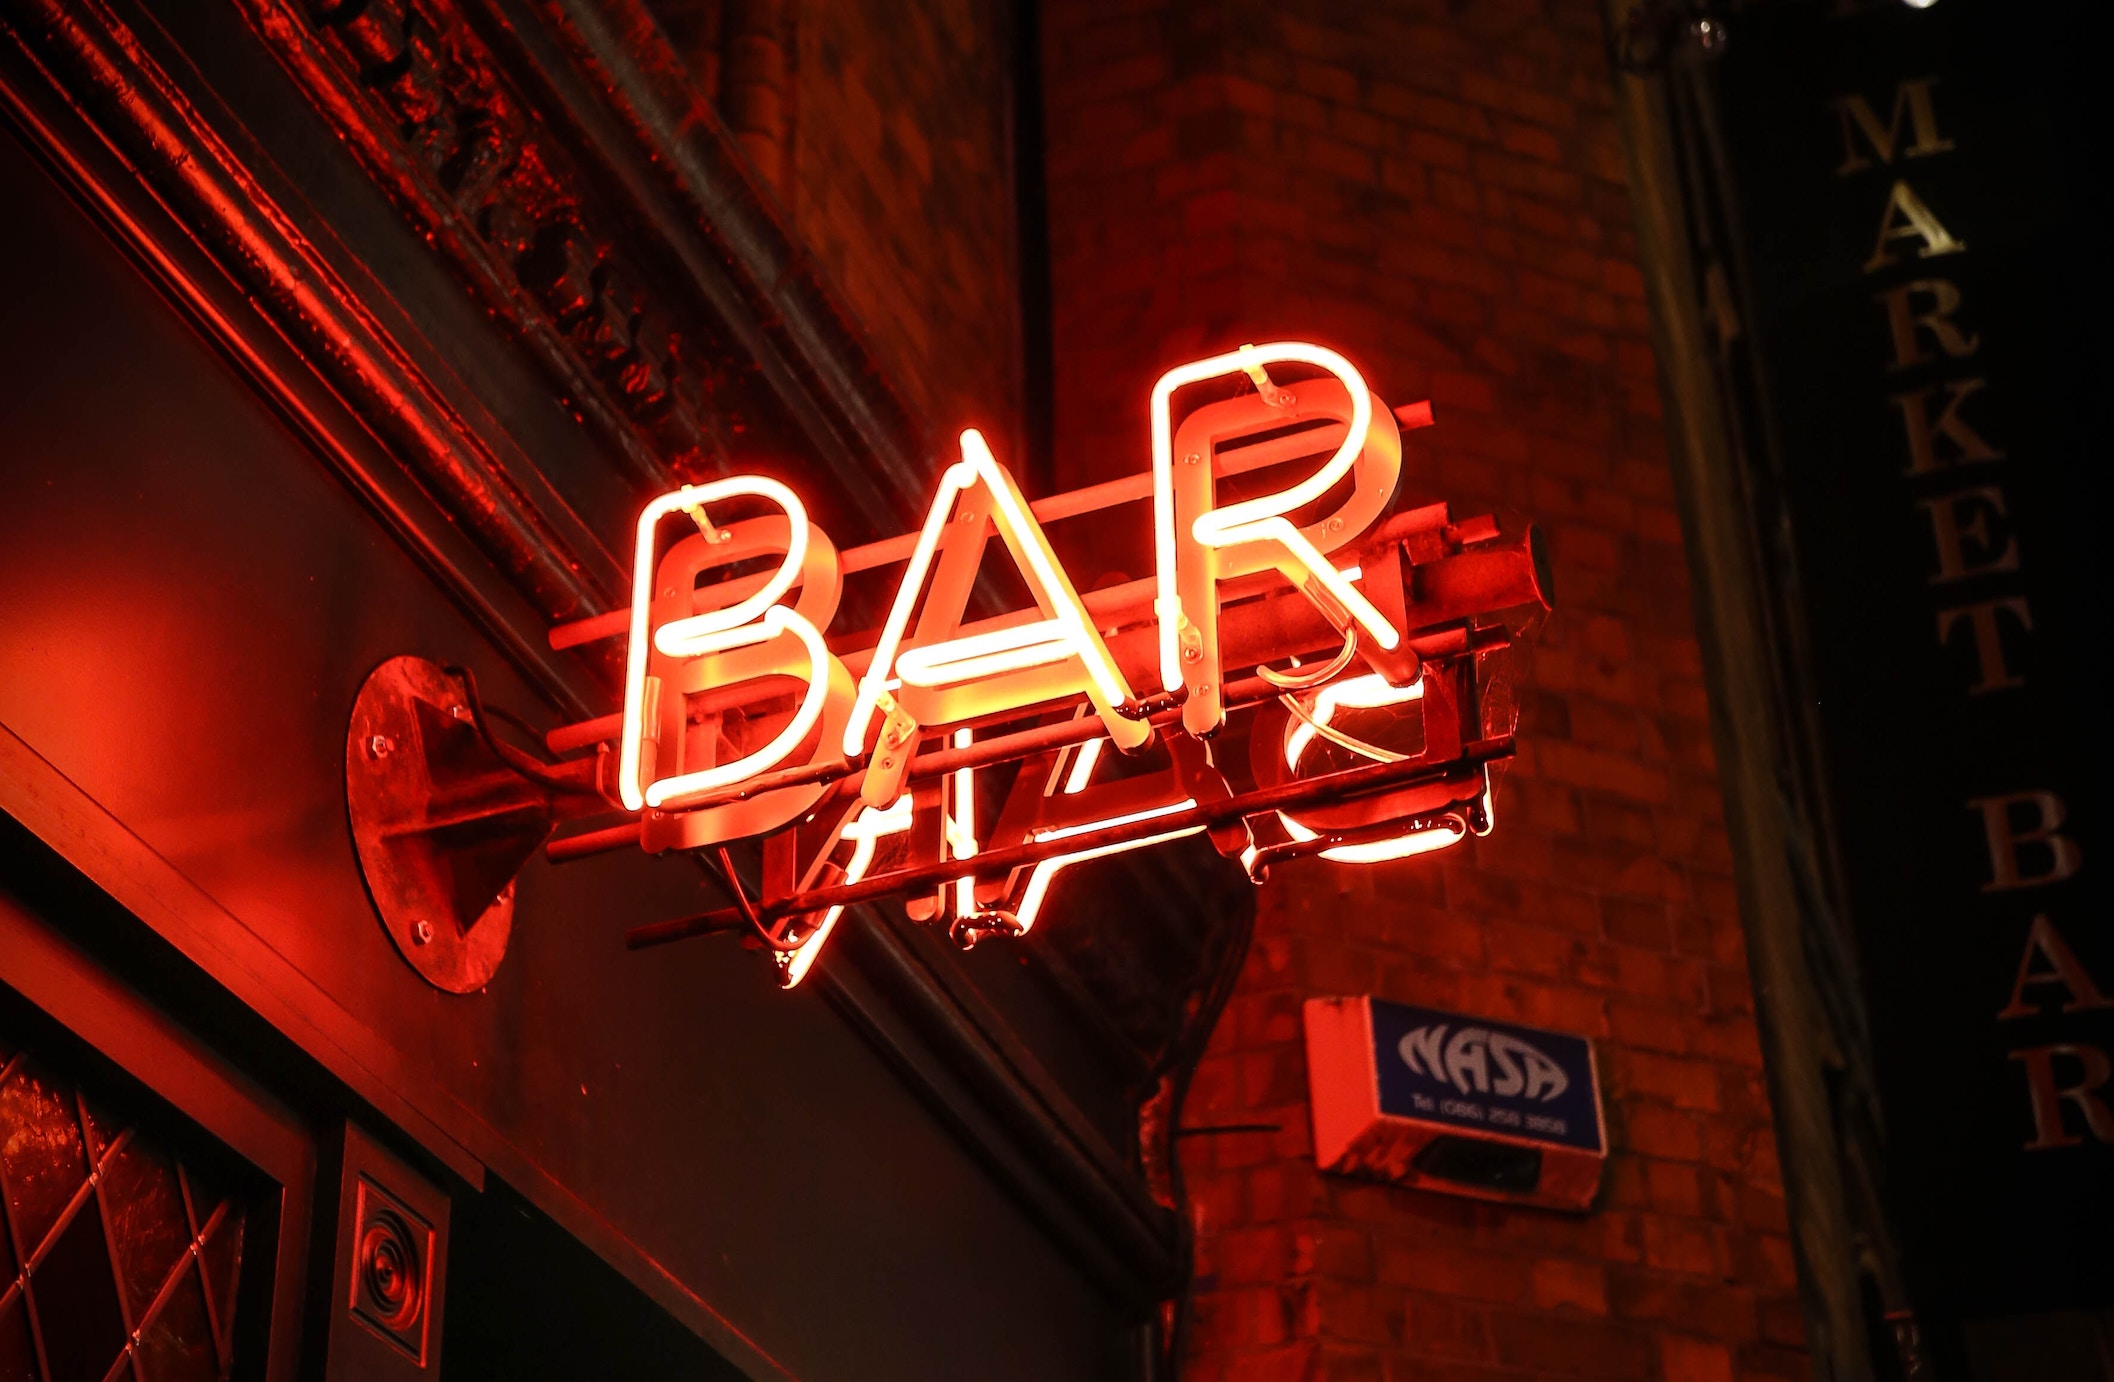 Should I Have a Host Bar or an Open Bar?